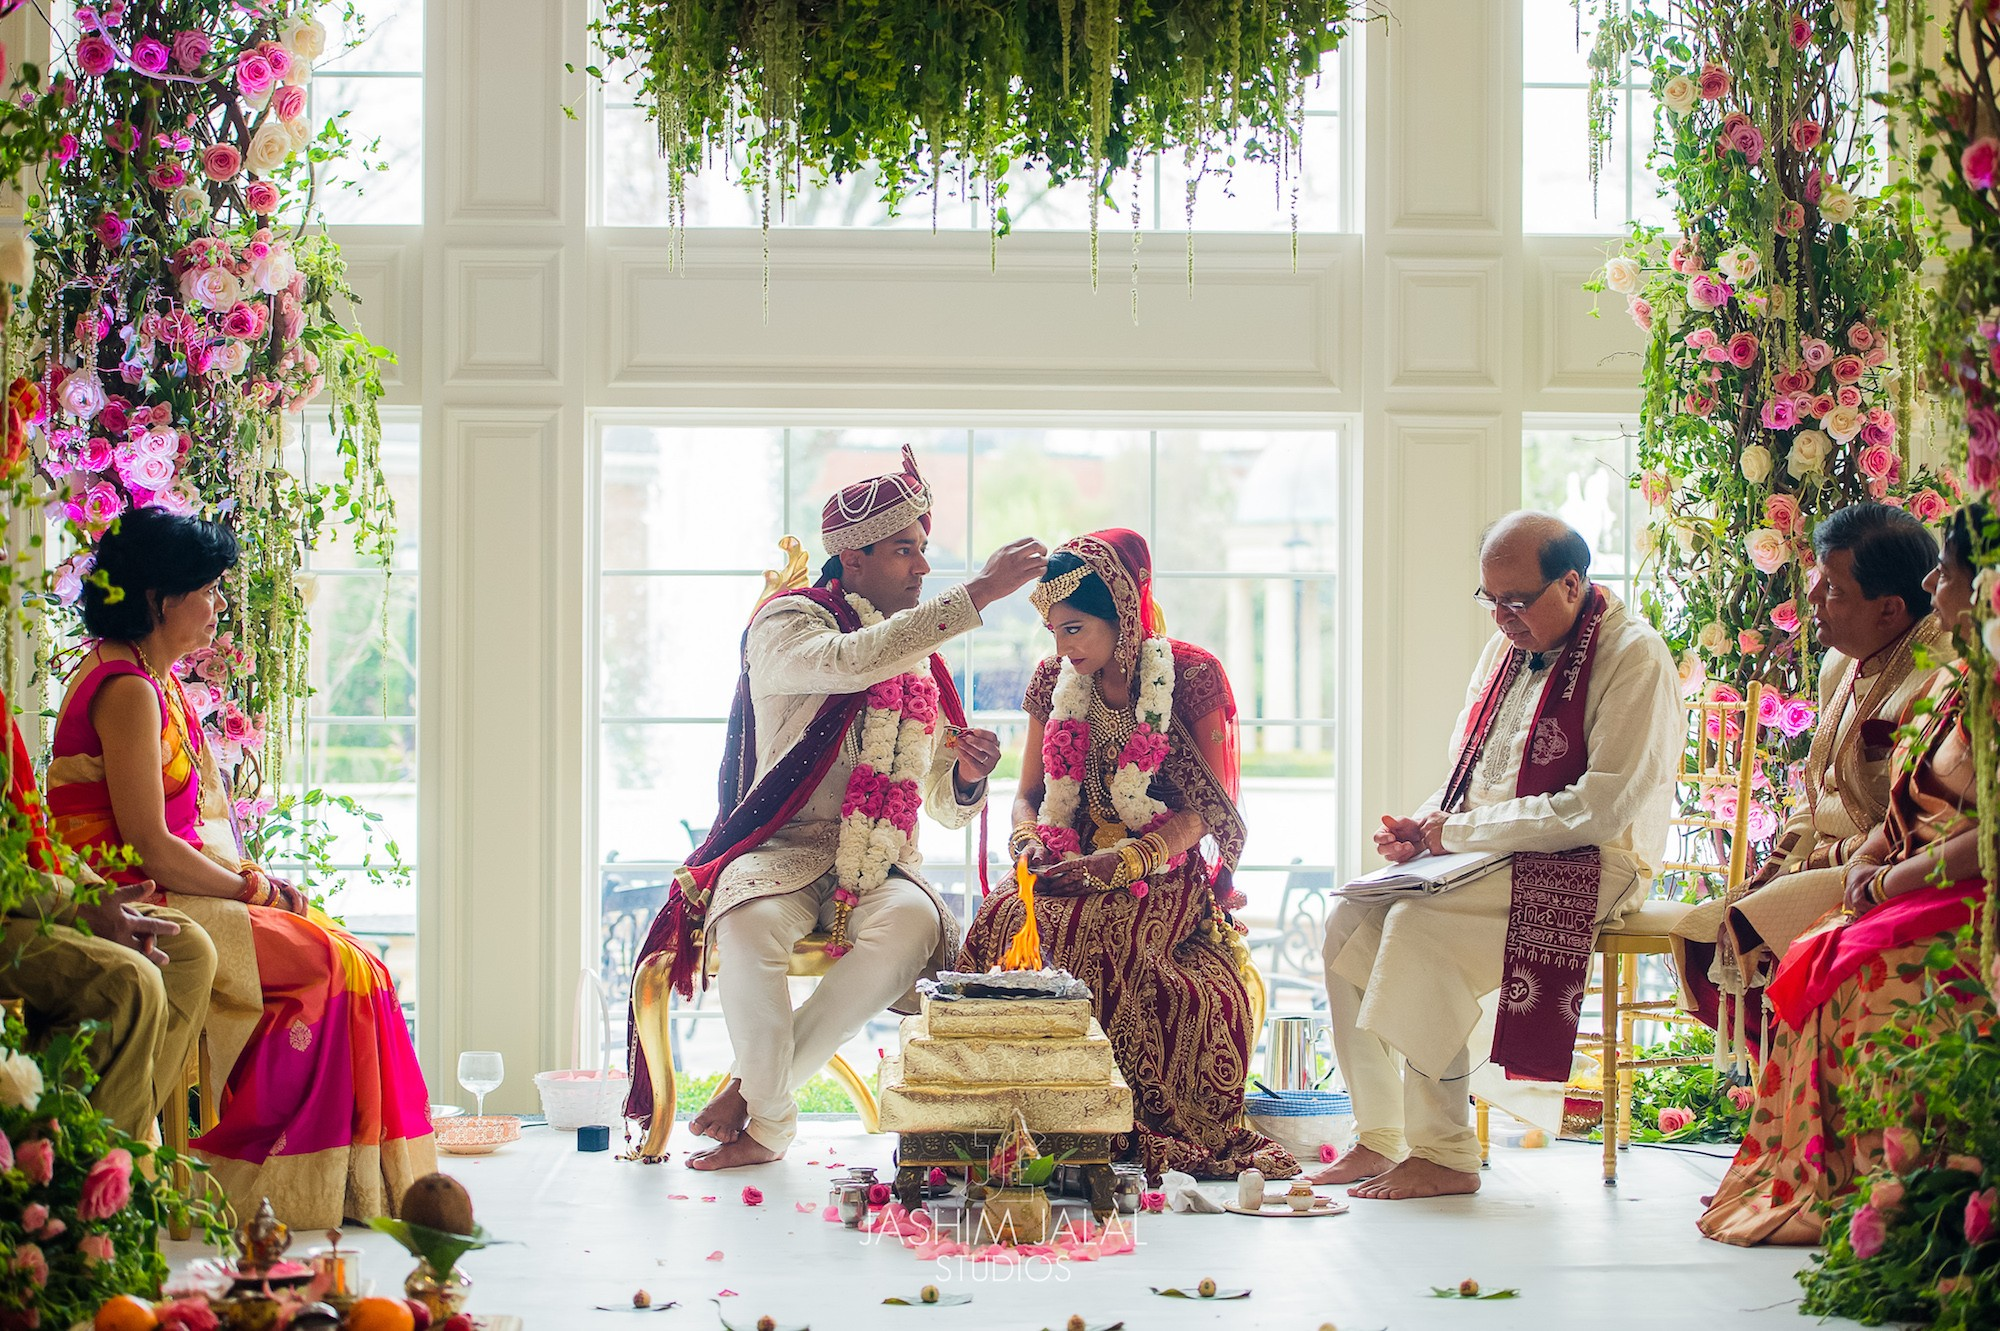 floral park hindu personals Find therapists in floral park, nassau county, new york, psychologists, marriage counseling, therapy, counselors, psychiatrists, child psychologists and couples .